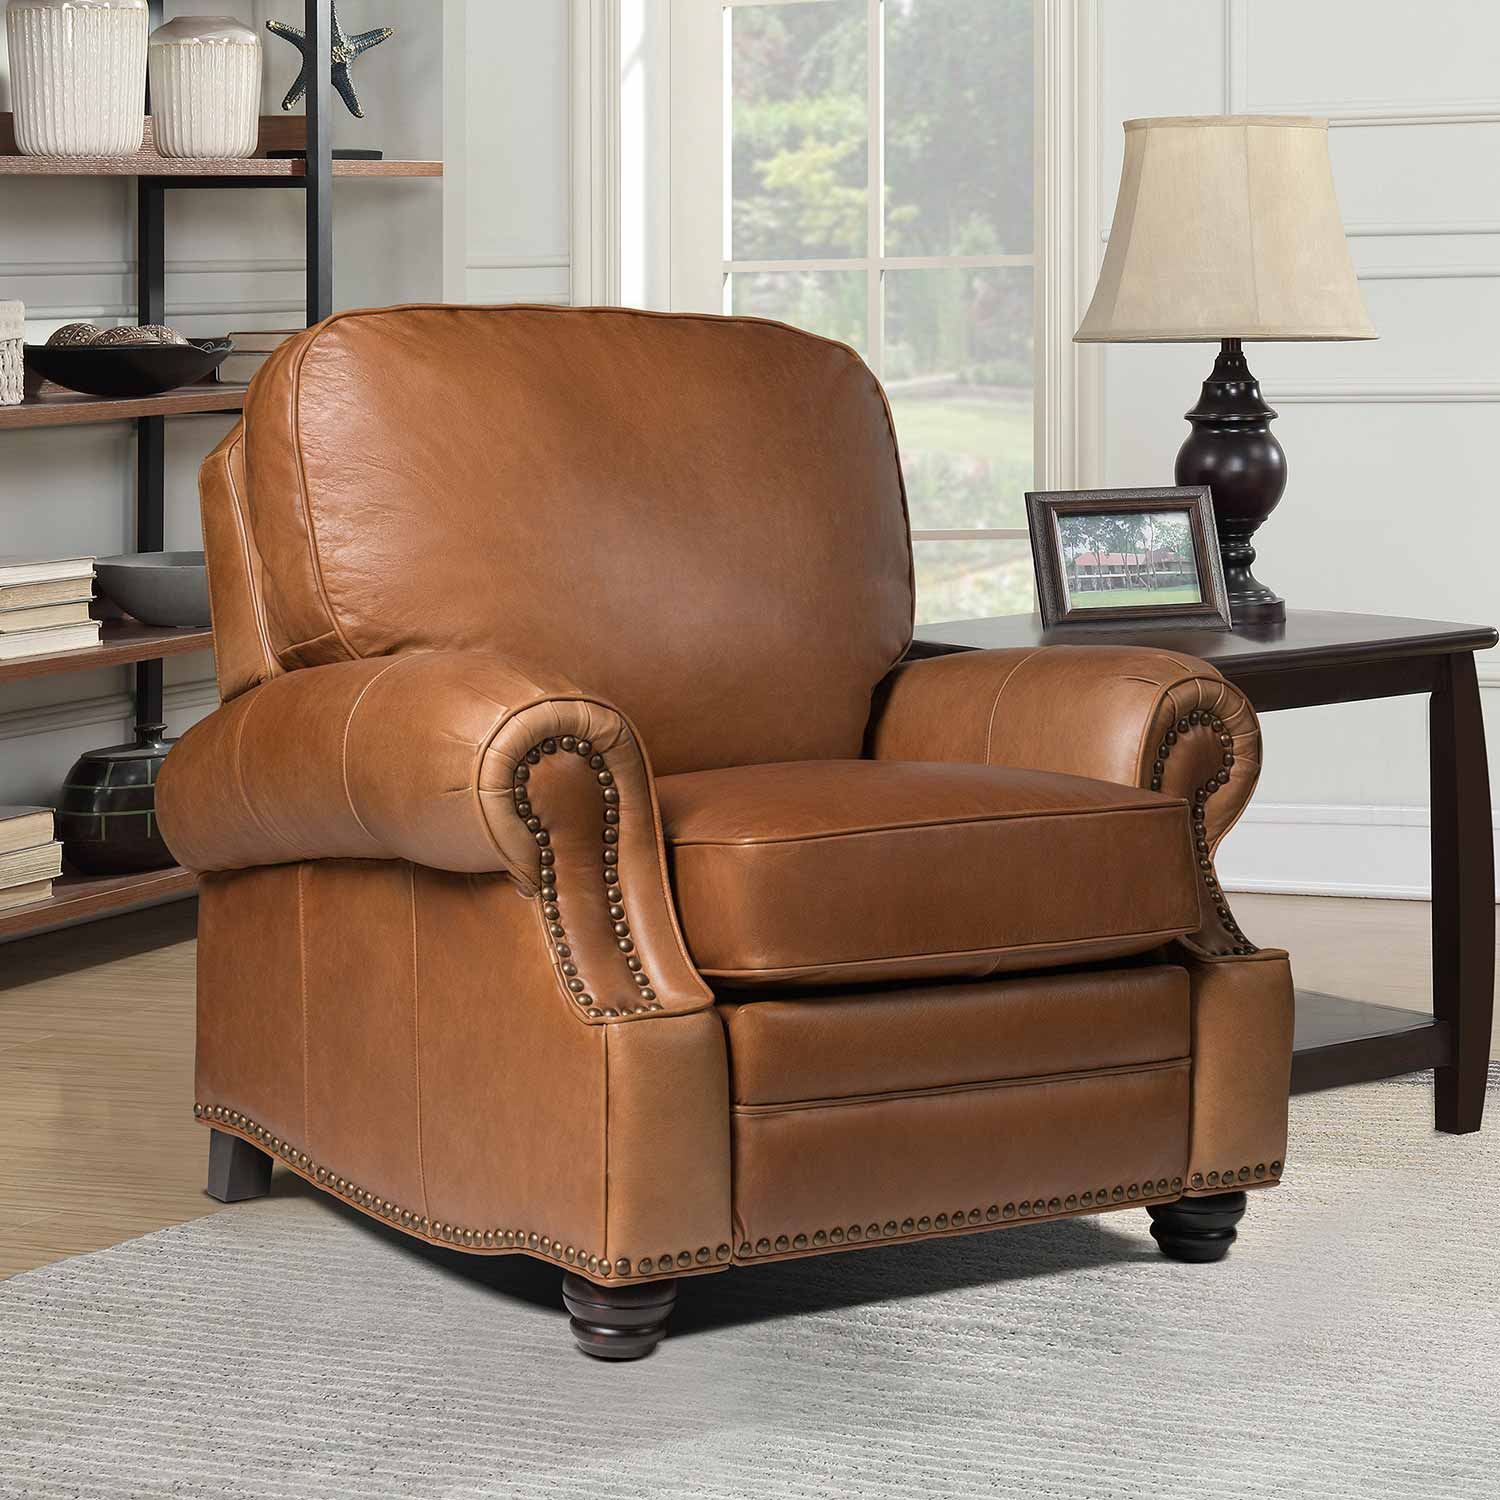 Barcalounger Longhorn Recliner Chair - Chaps Saddle/All top grain Leather